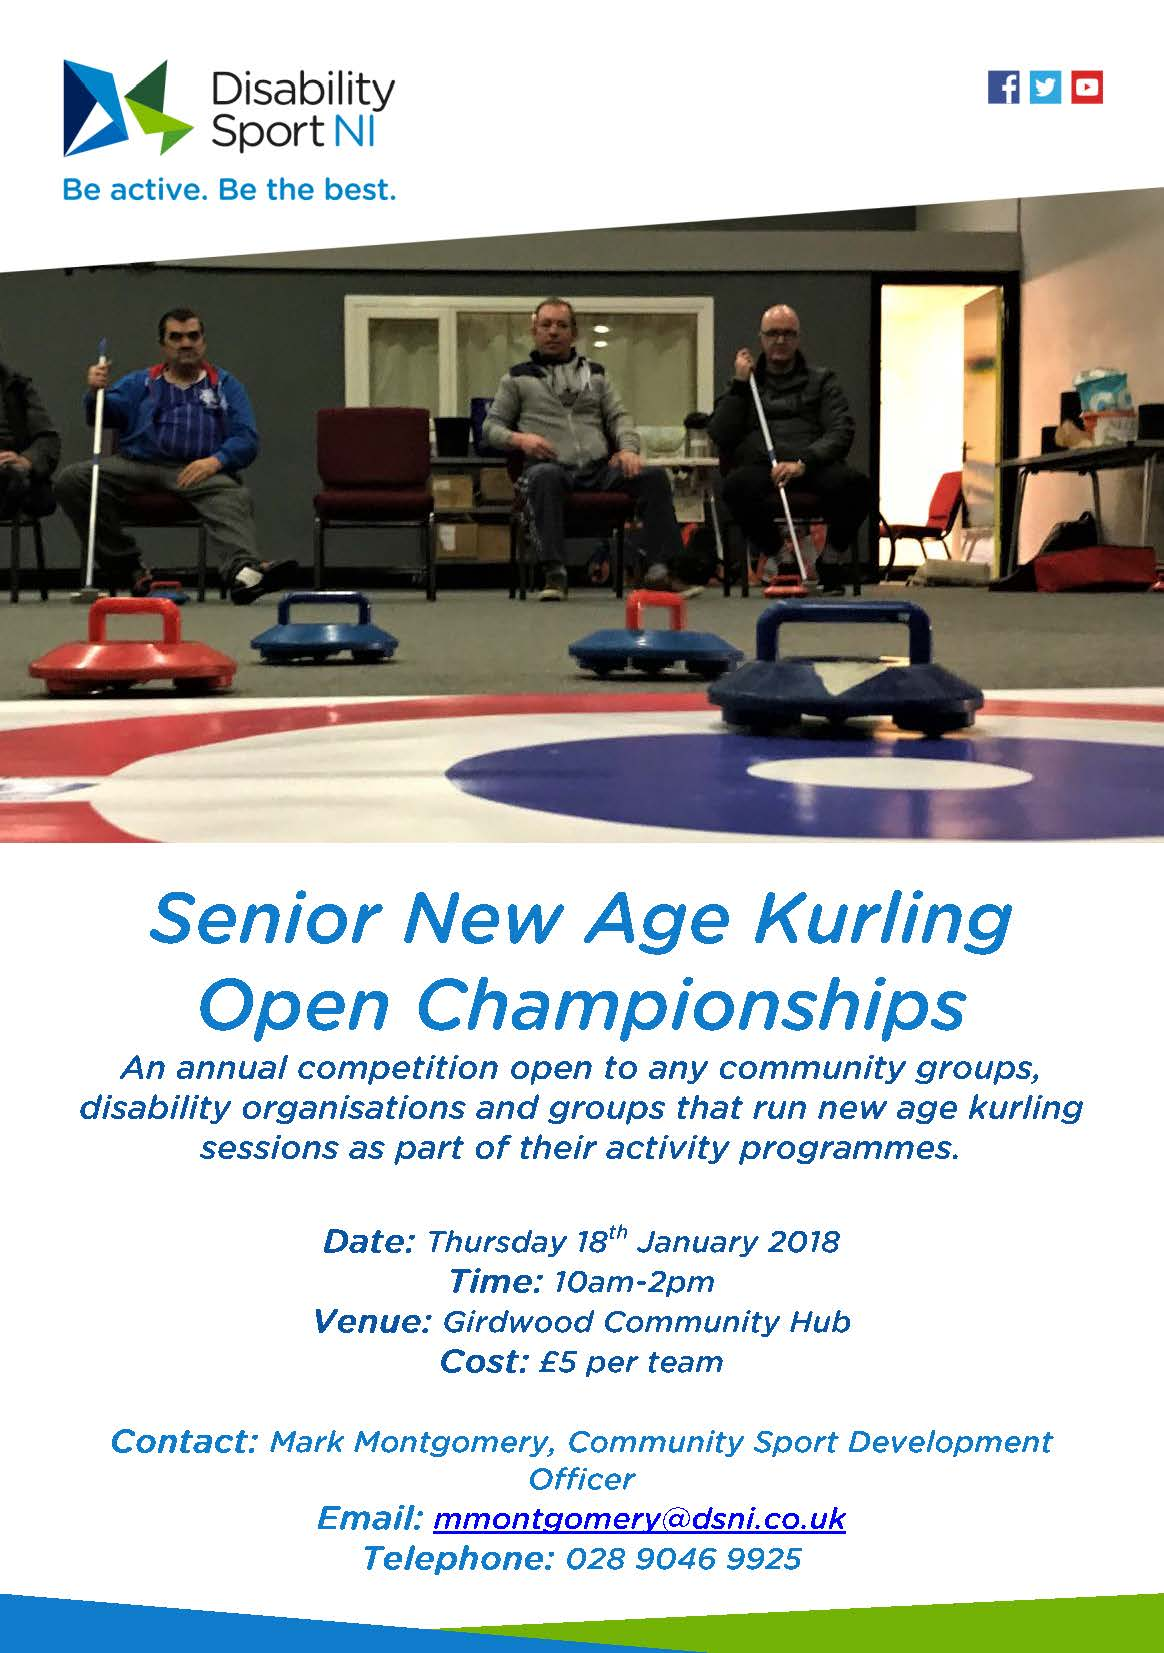 Senior New Age Kurling Open Championships Flyer. Available formats available upon request